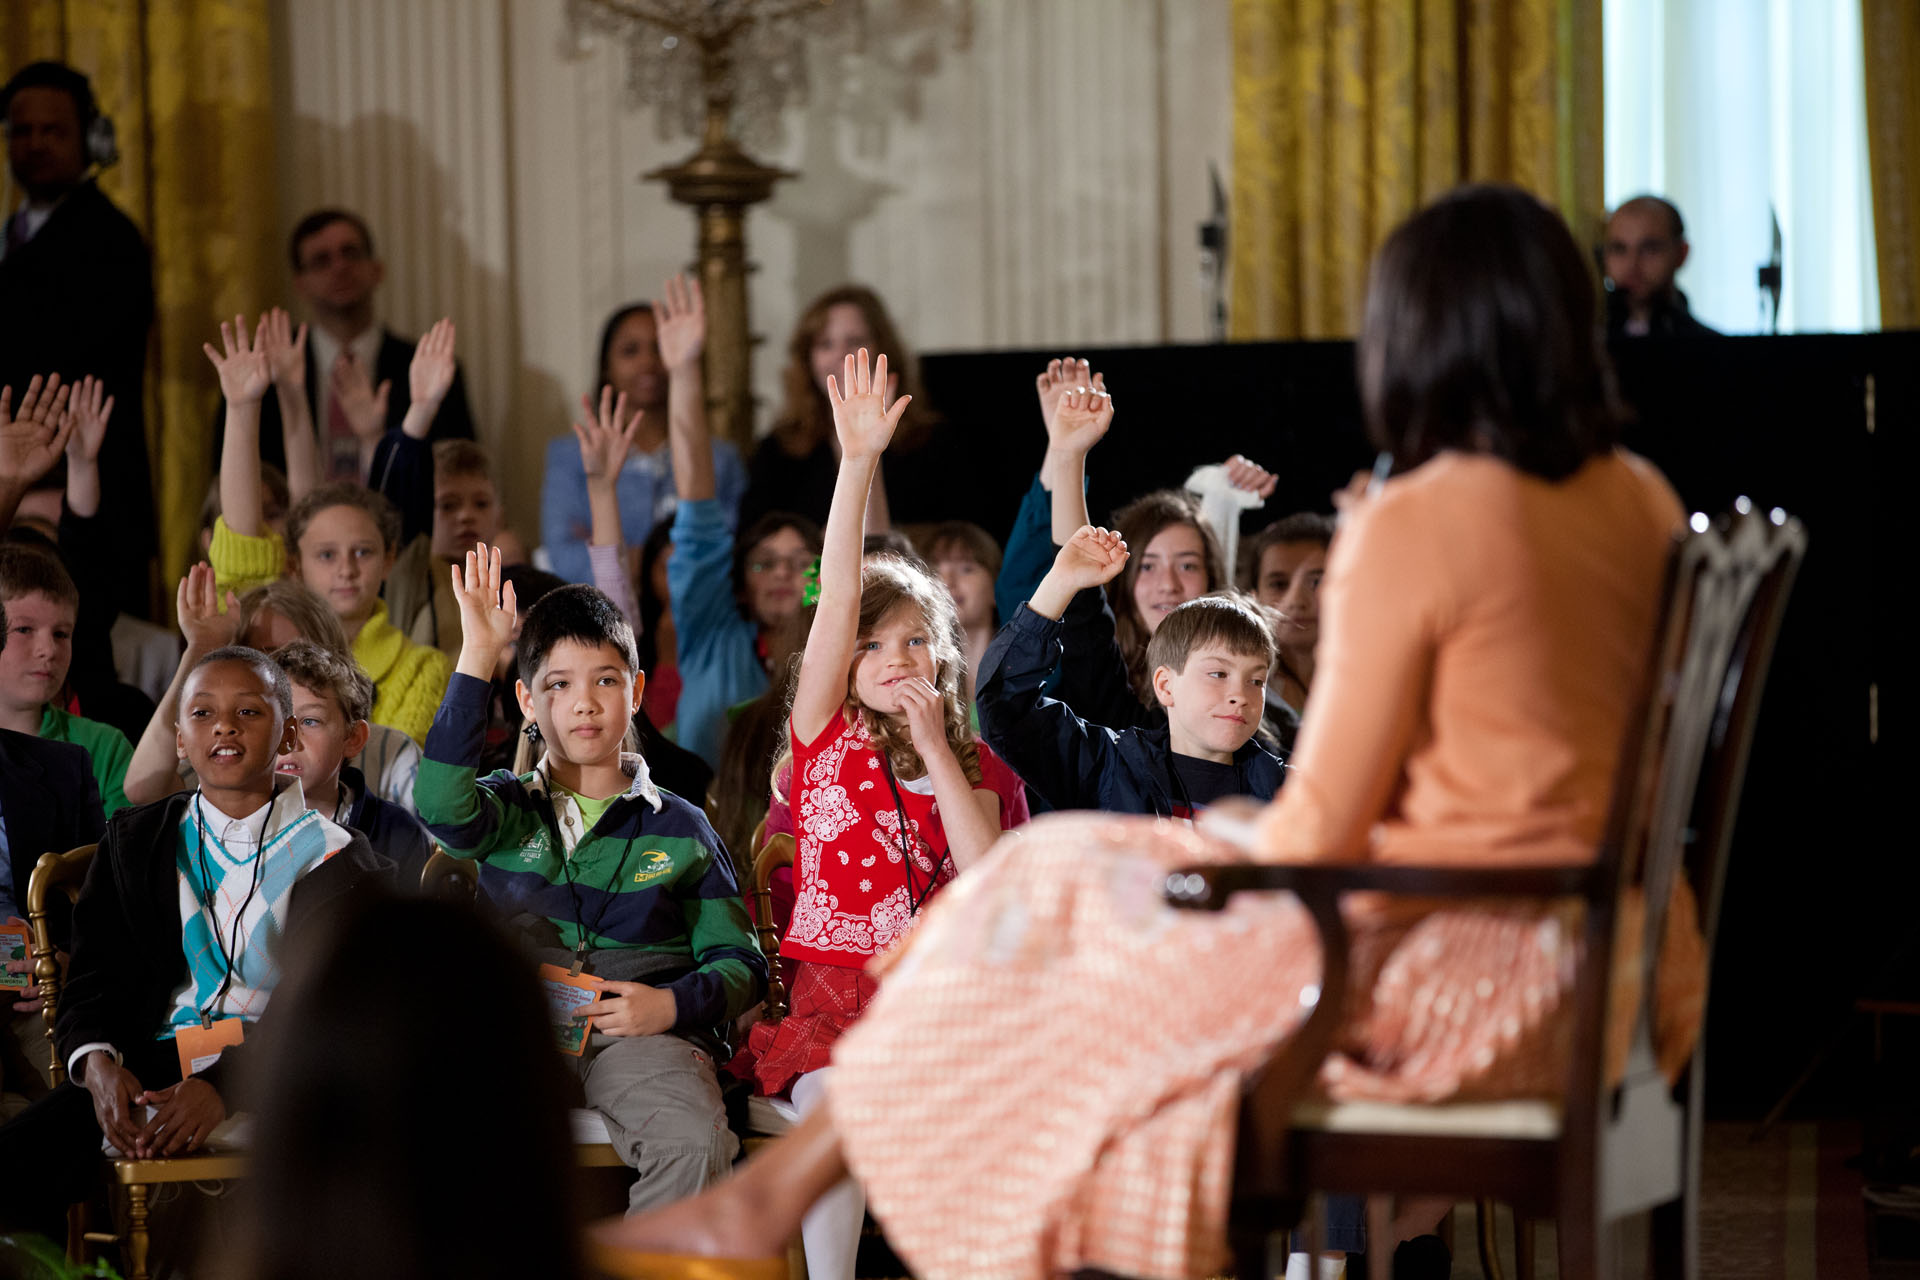 Children of White House staff raise their hands to ask First Lady Michelle Obama a question (April 26, 2012)